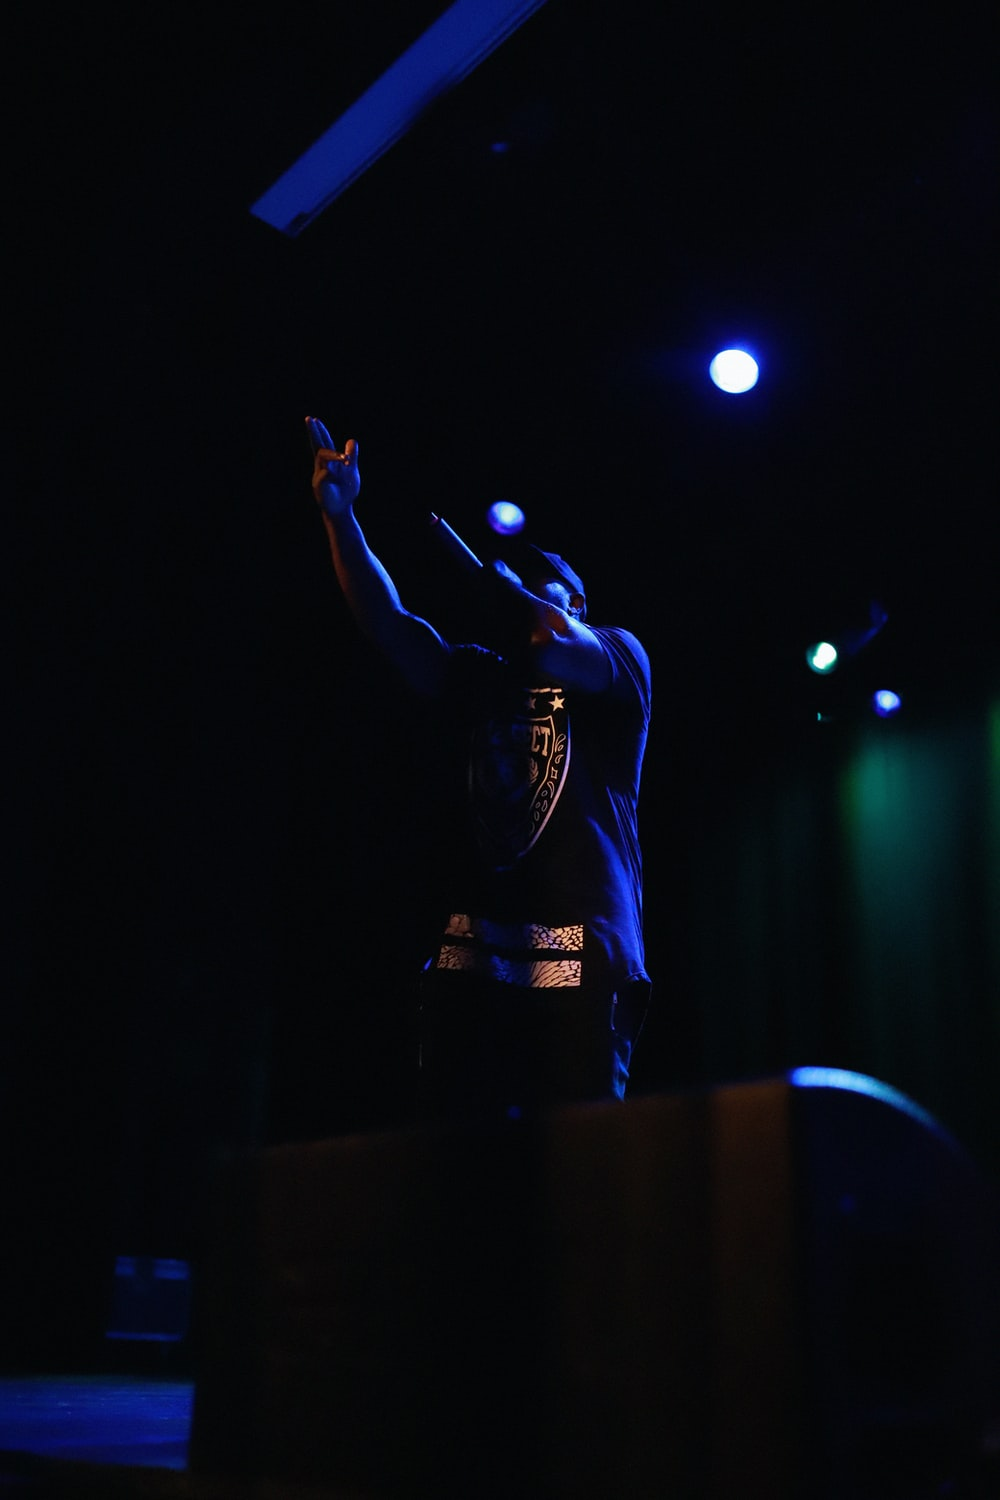 man in black long sleeve shirt standing on stage